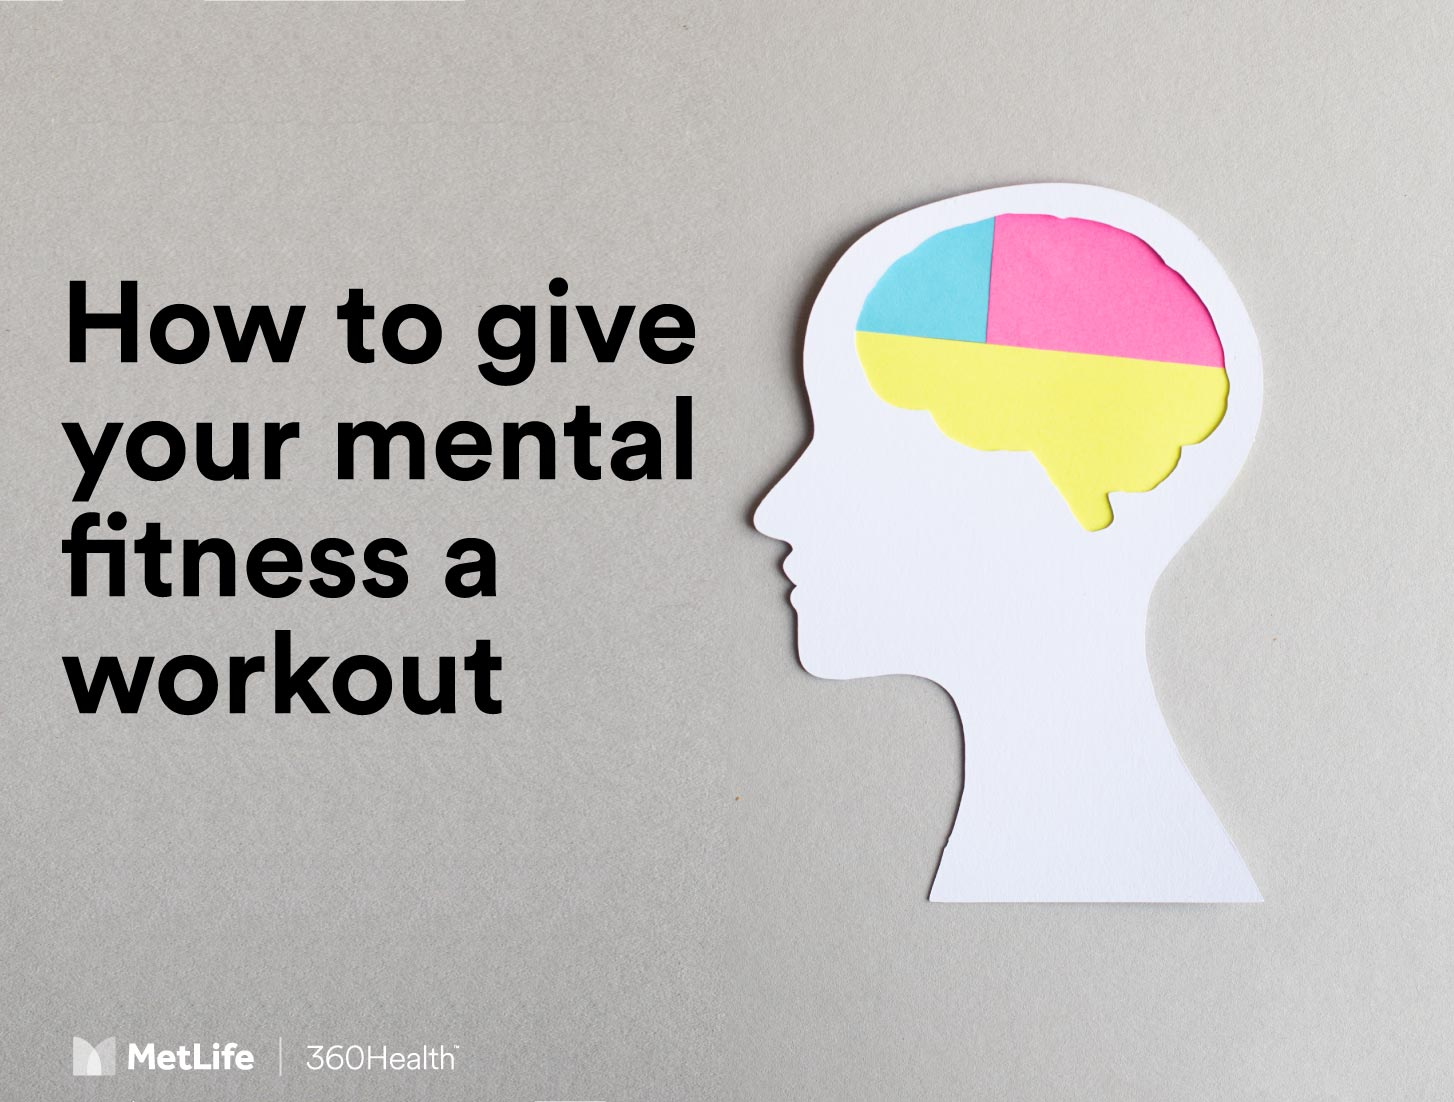 How to give your mental fitness a workout